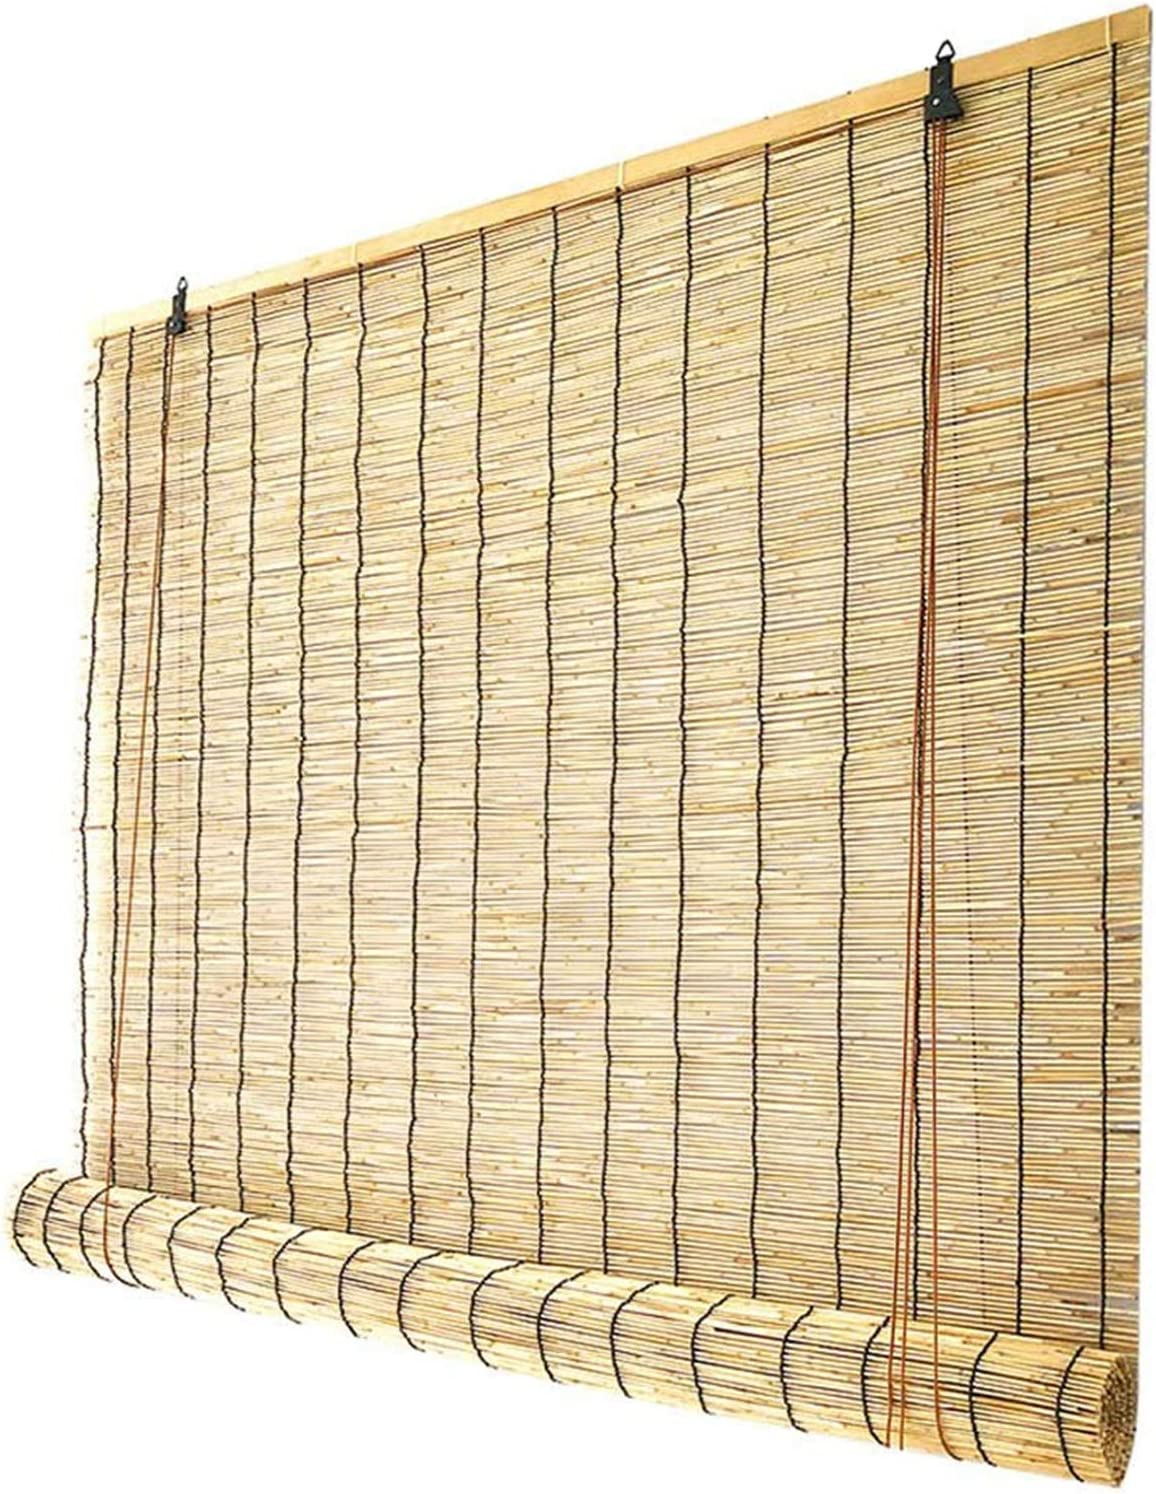 DBXOKK Natural Reed Curtain Roller Blinds Bamboo Brand new C Shades Tucson Mall